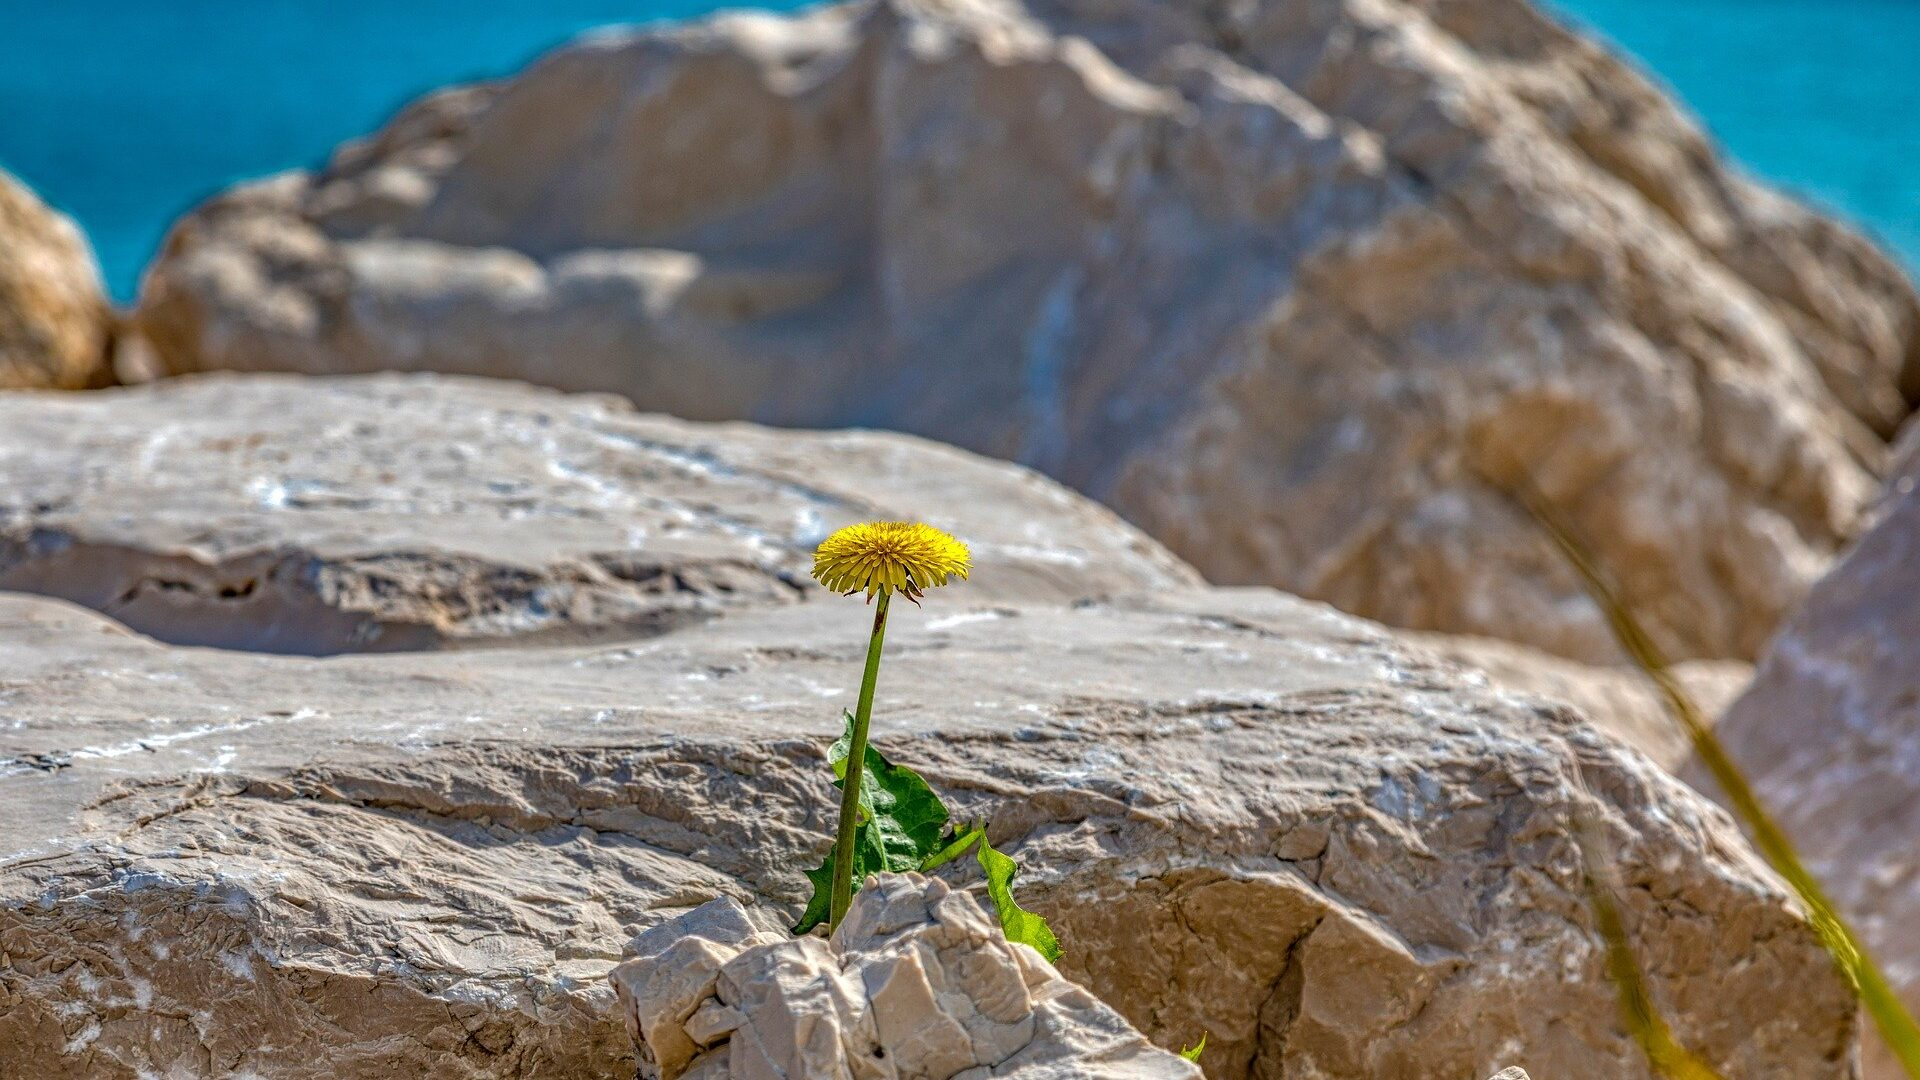 One yellow dandelion amidst rocks in an arid climate.